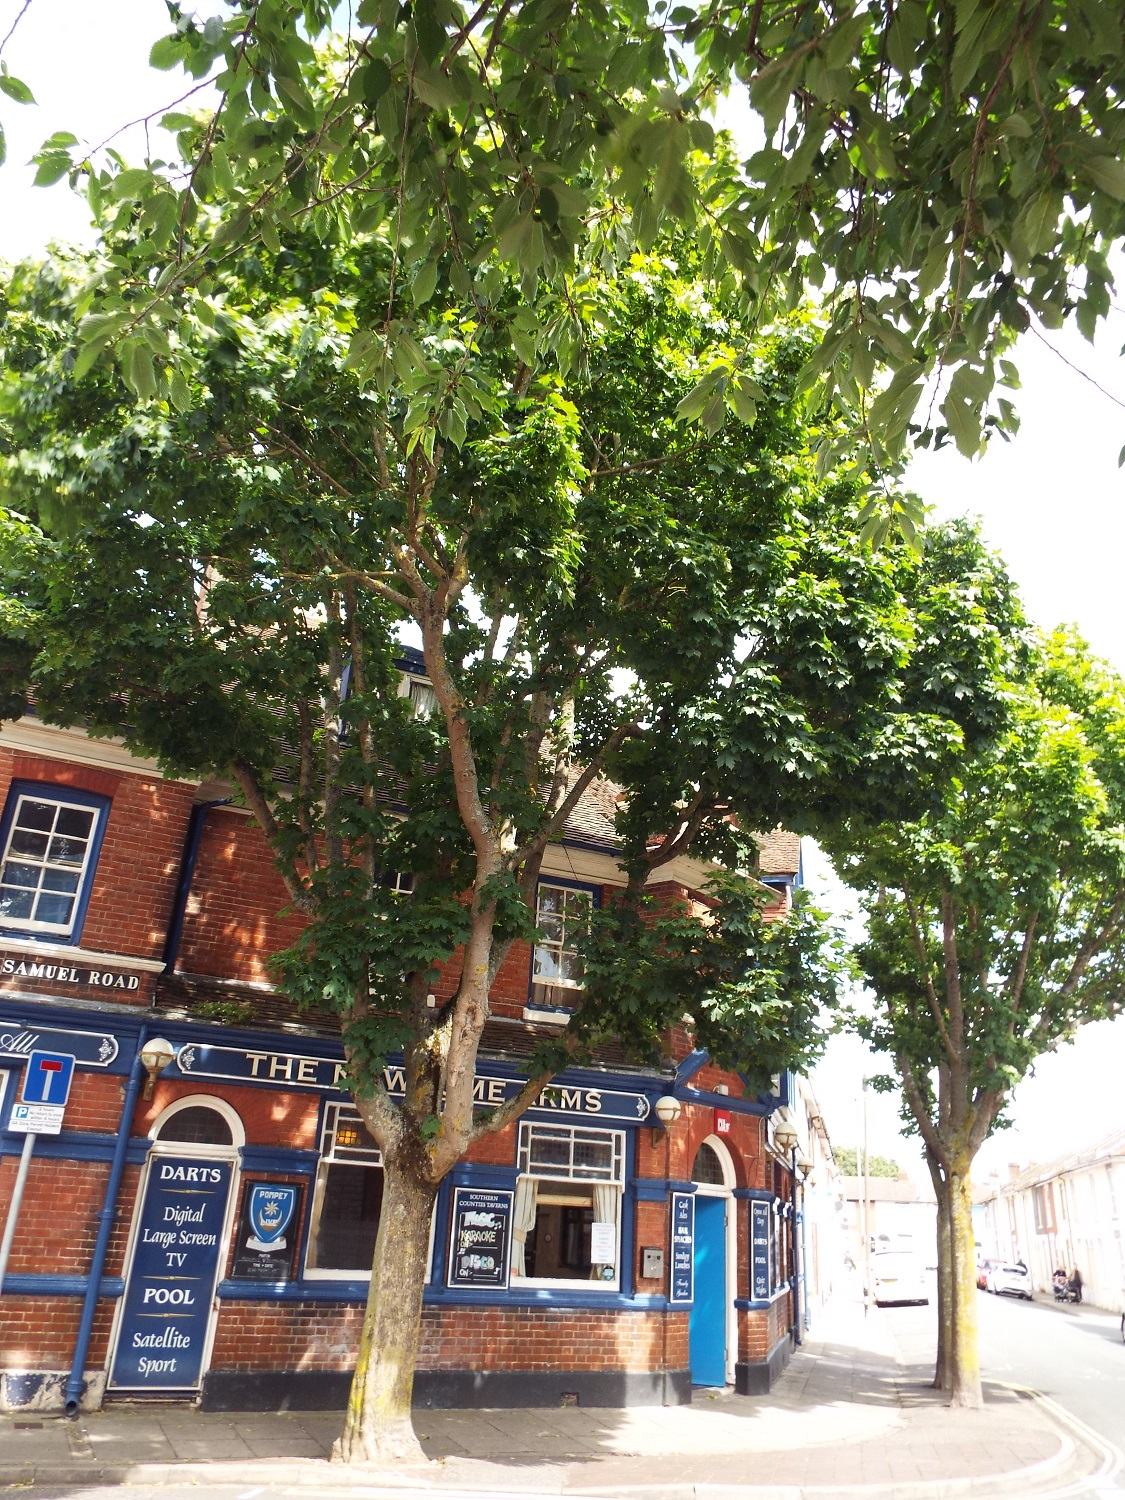 The Newcome Arms, Fratton, Portsmouth. Crow's nest at the top of the tall sycamore trees. It's a hard landing.